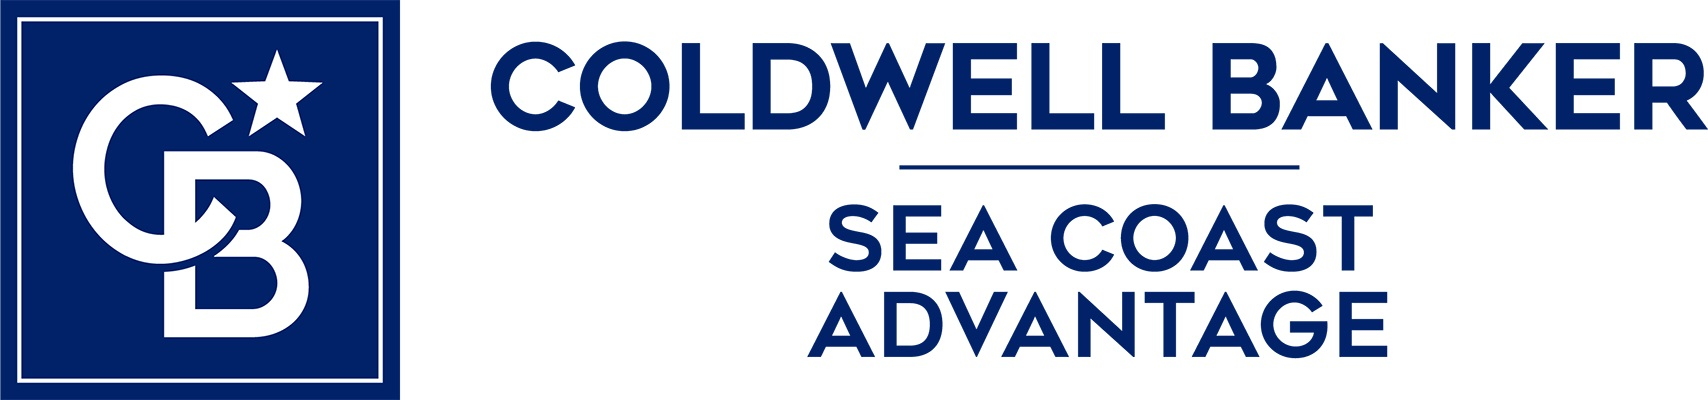 Katie Moore - Coldwell Banker Sea Coast Advantage Realty Logo